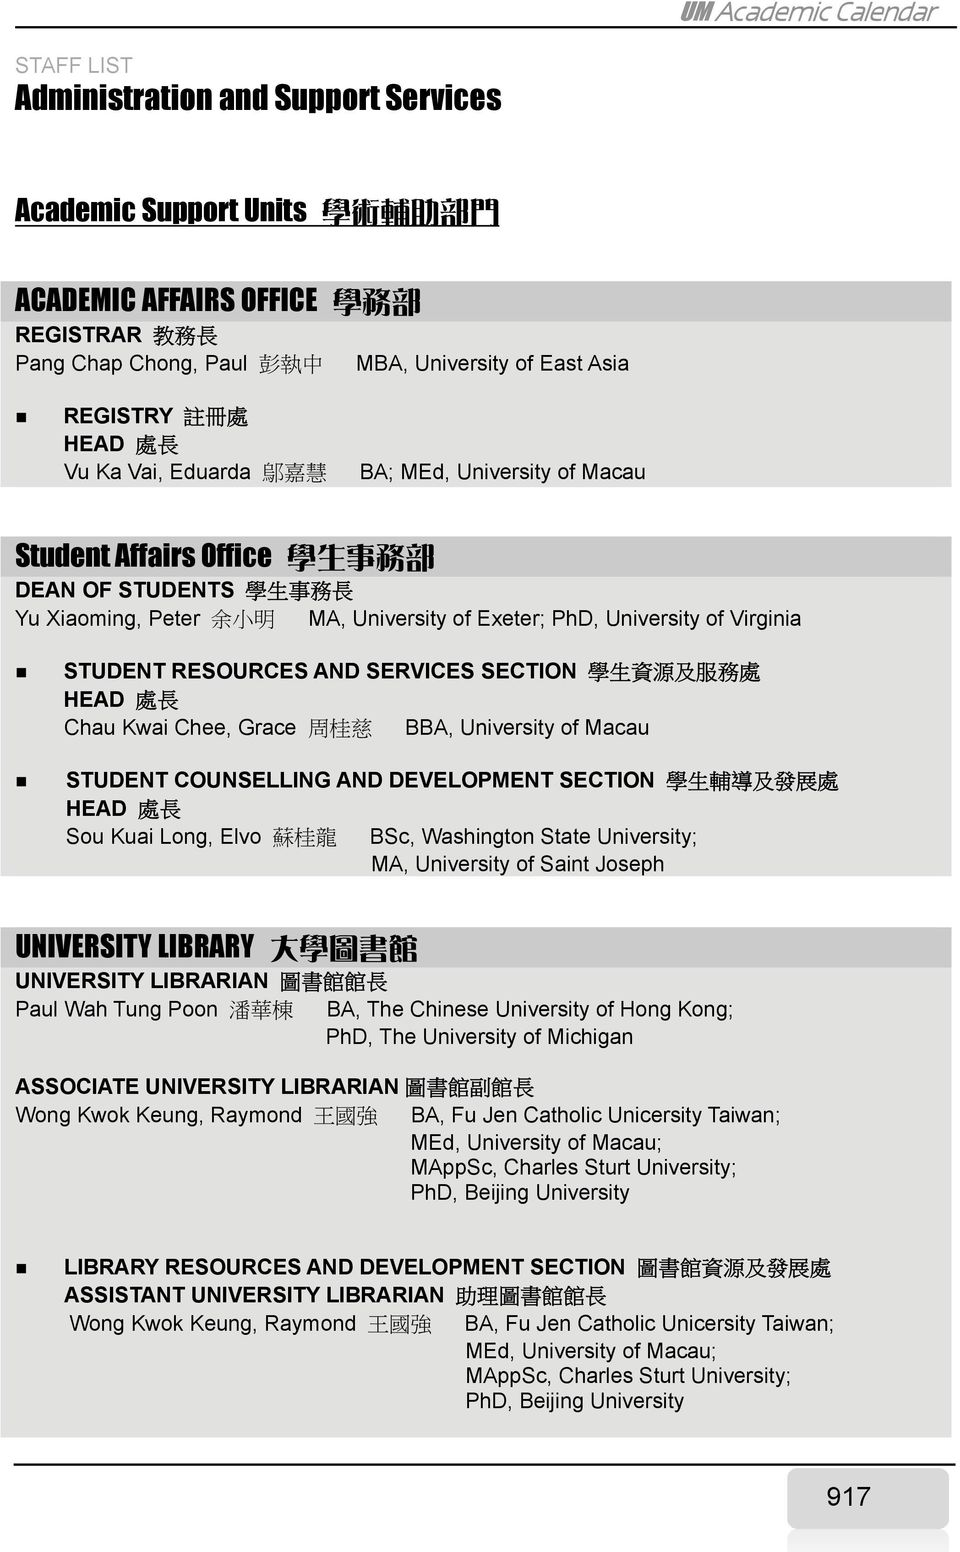 University of Virginia STUDENT RESOURCES AND SERVICES SECTION 學 生 資 源 及 服 務 處 Chau Kwai Chee, Grace 周 桂 慈 BBA, University of Macau STUDENT COUNSELLING AND DEVELOPMENT SECTION 學 生 輔 導 及 發 展 處 Sou Kuai